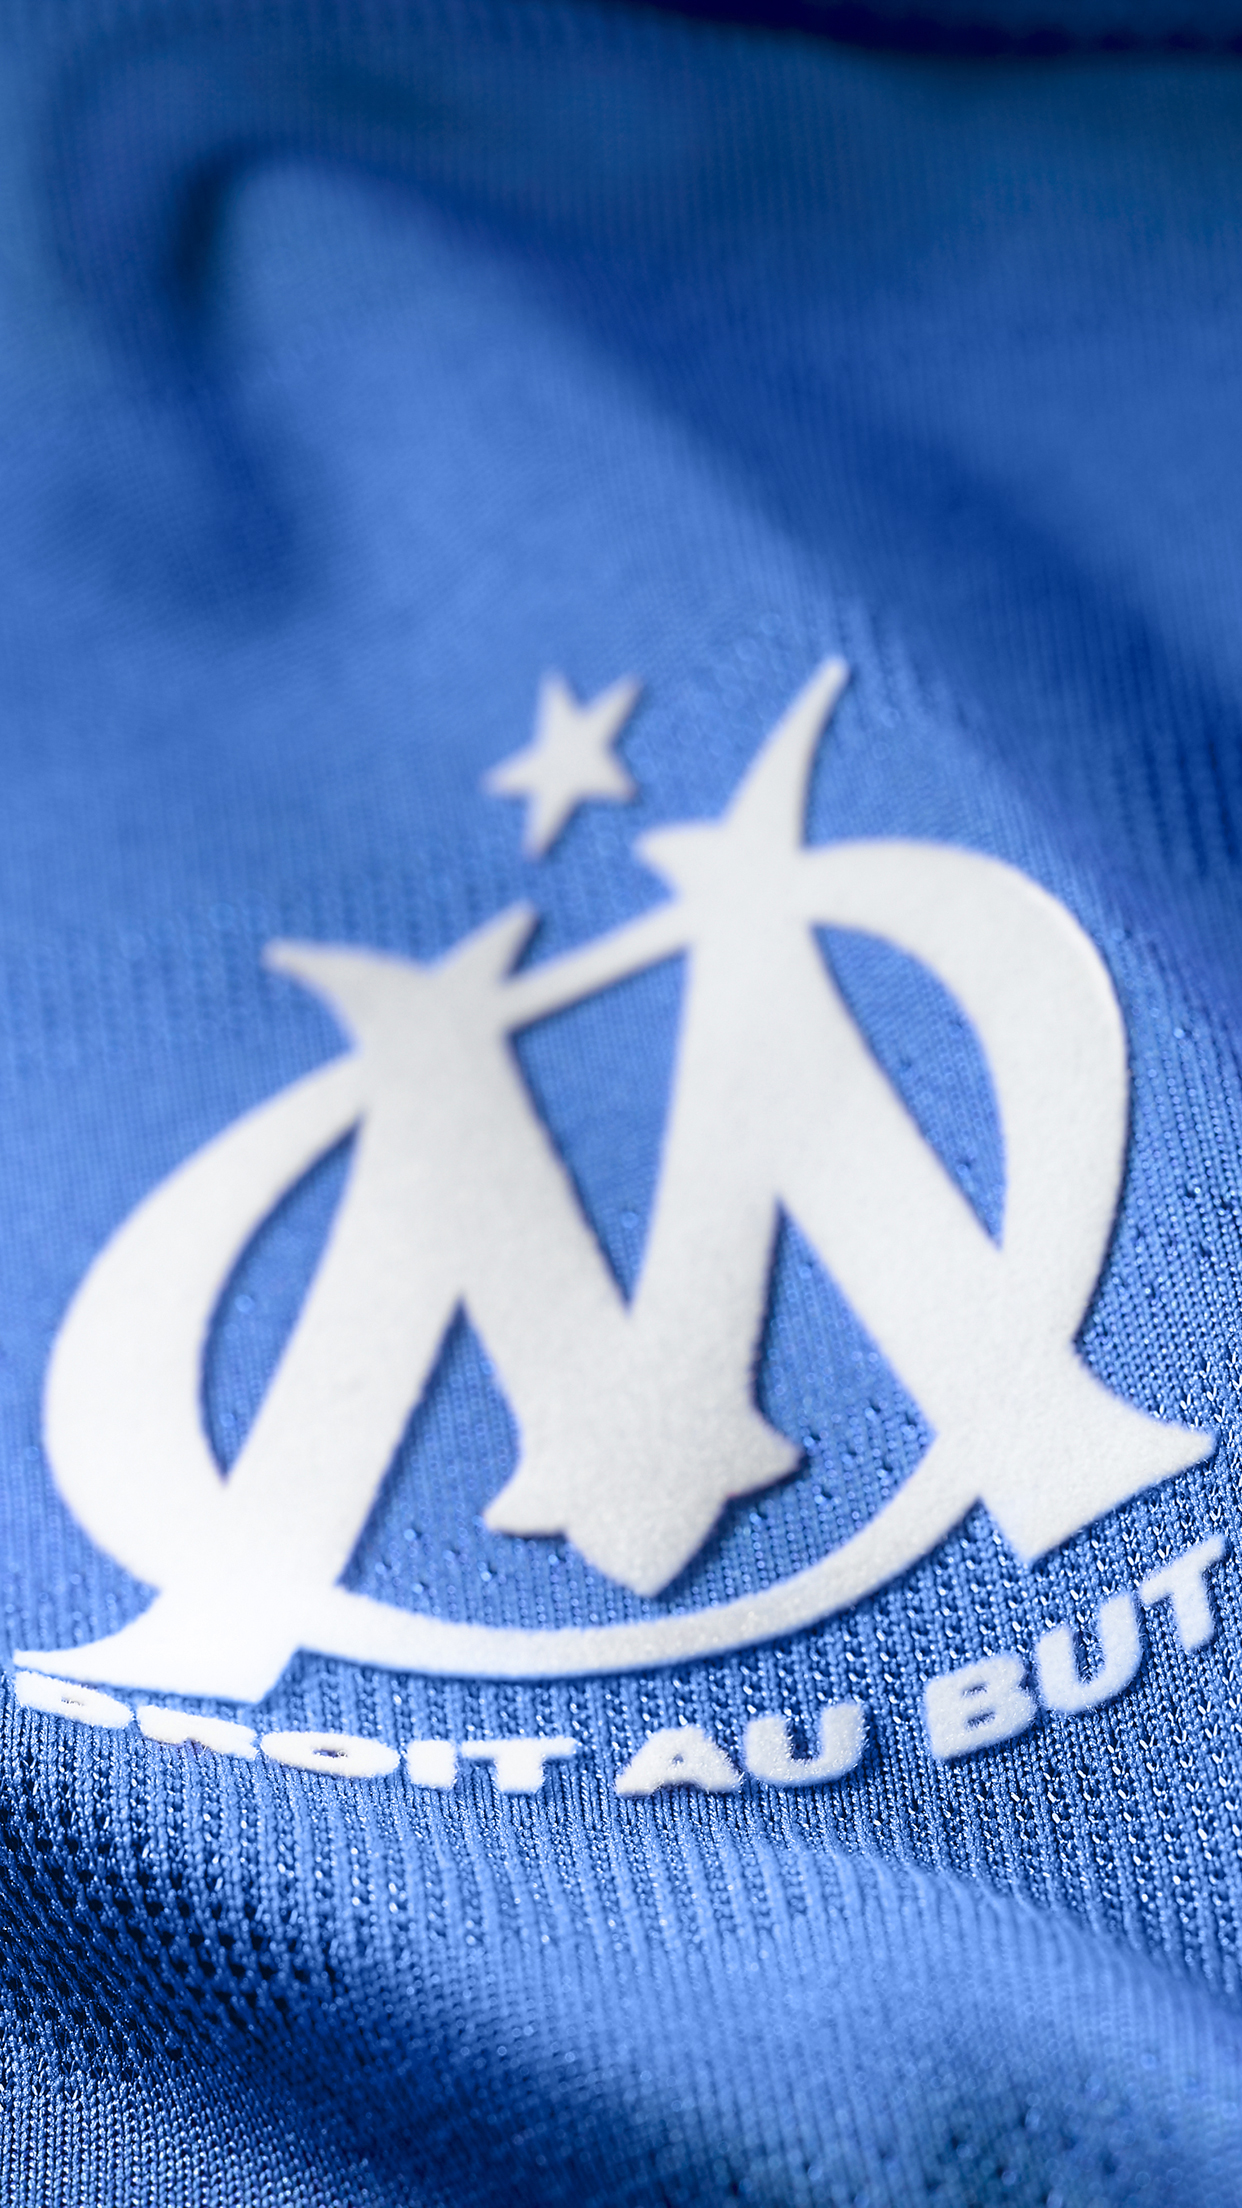 OM Maillot iPhone 3Wallpapers Parallax OM Maillot